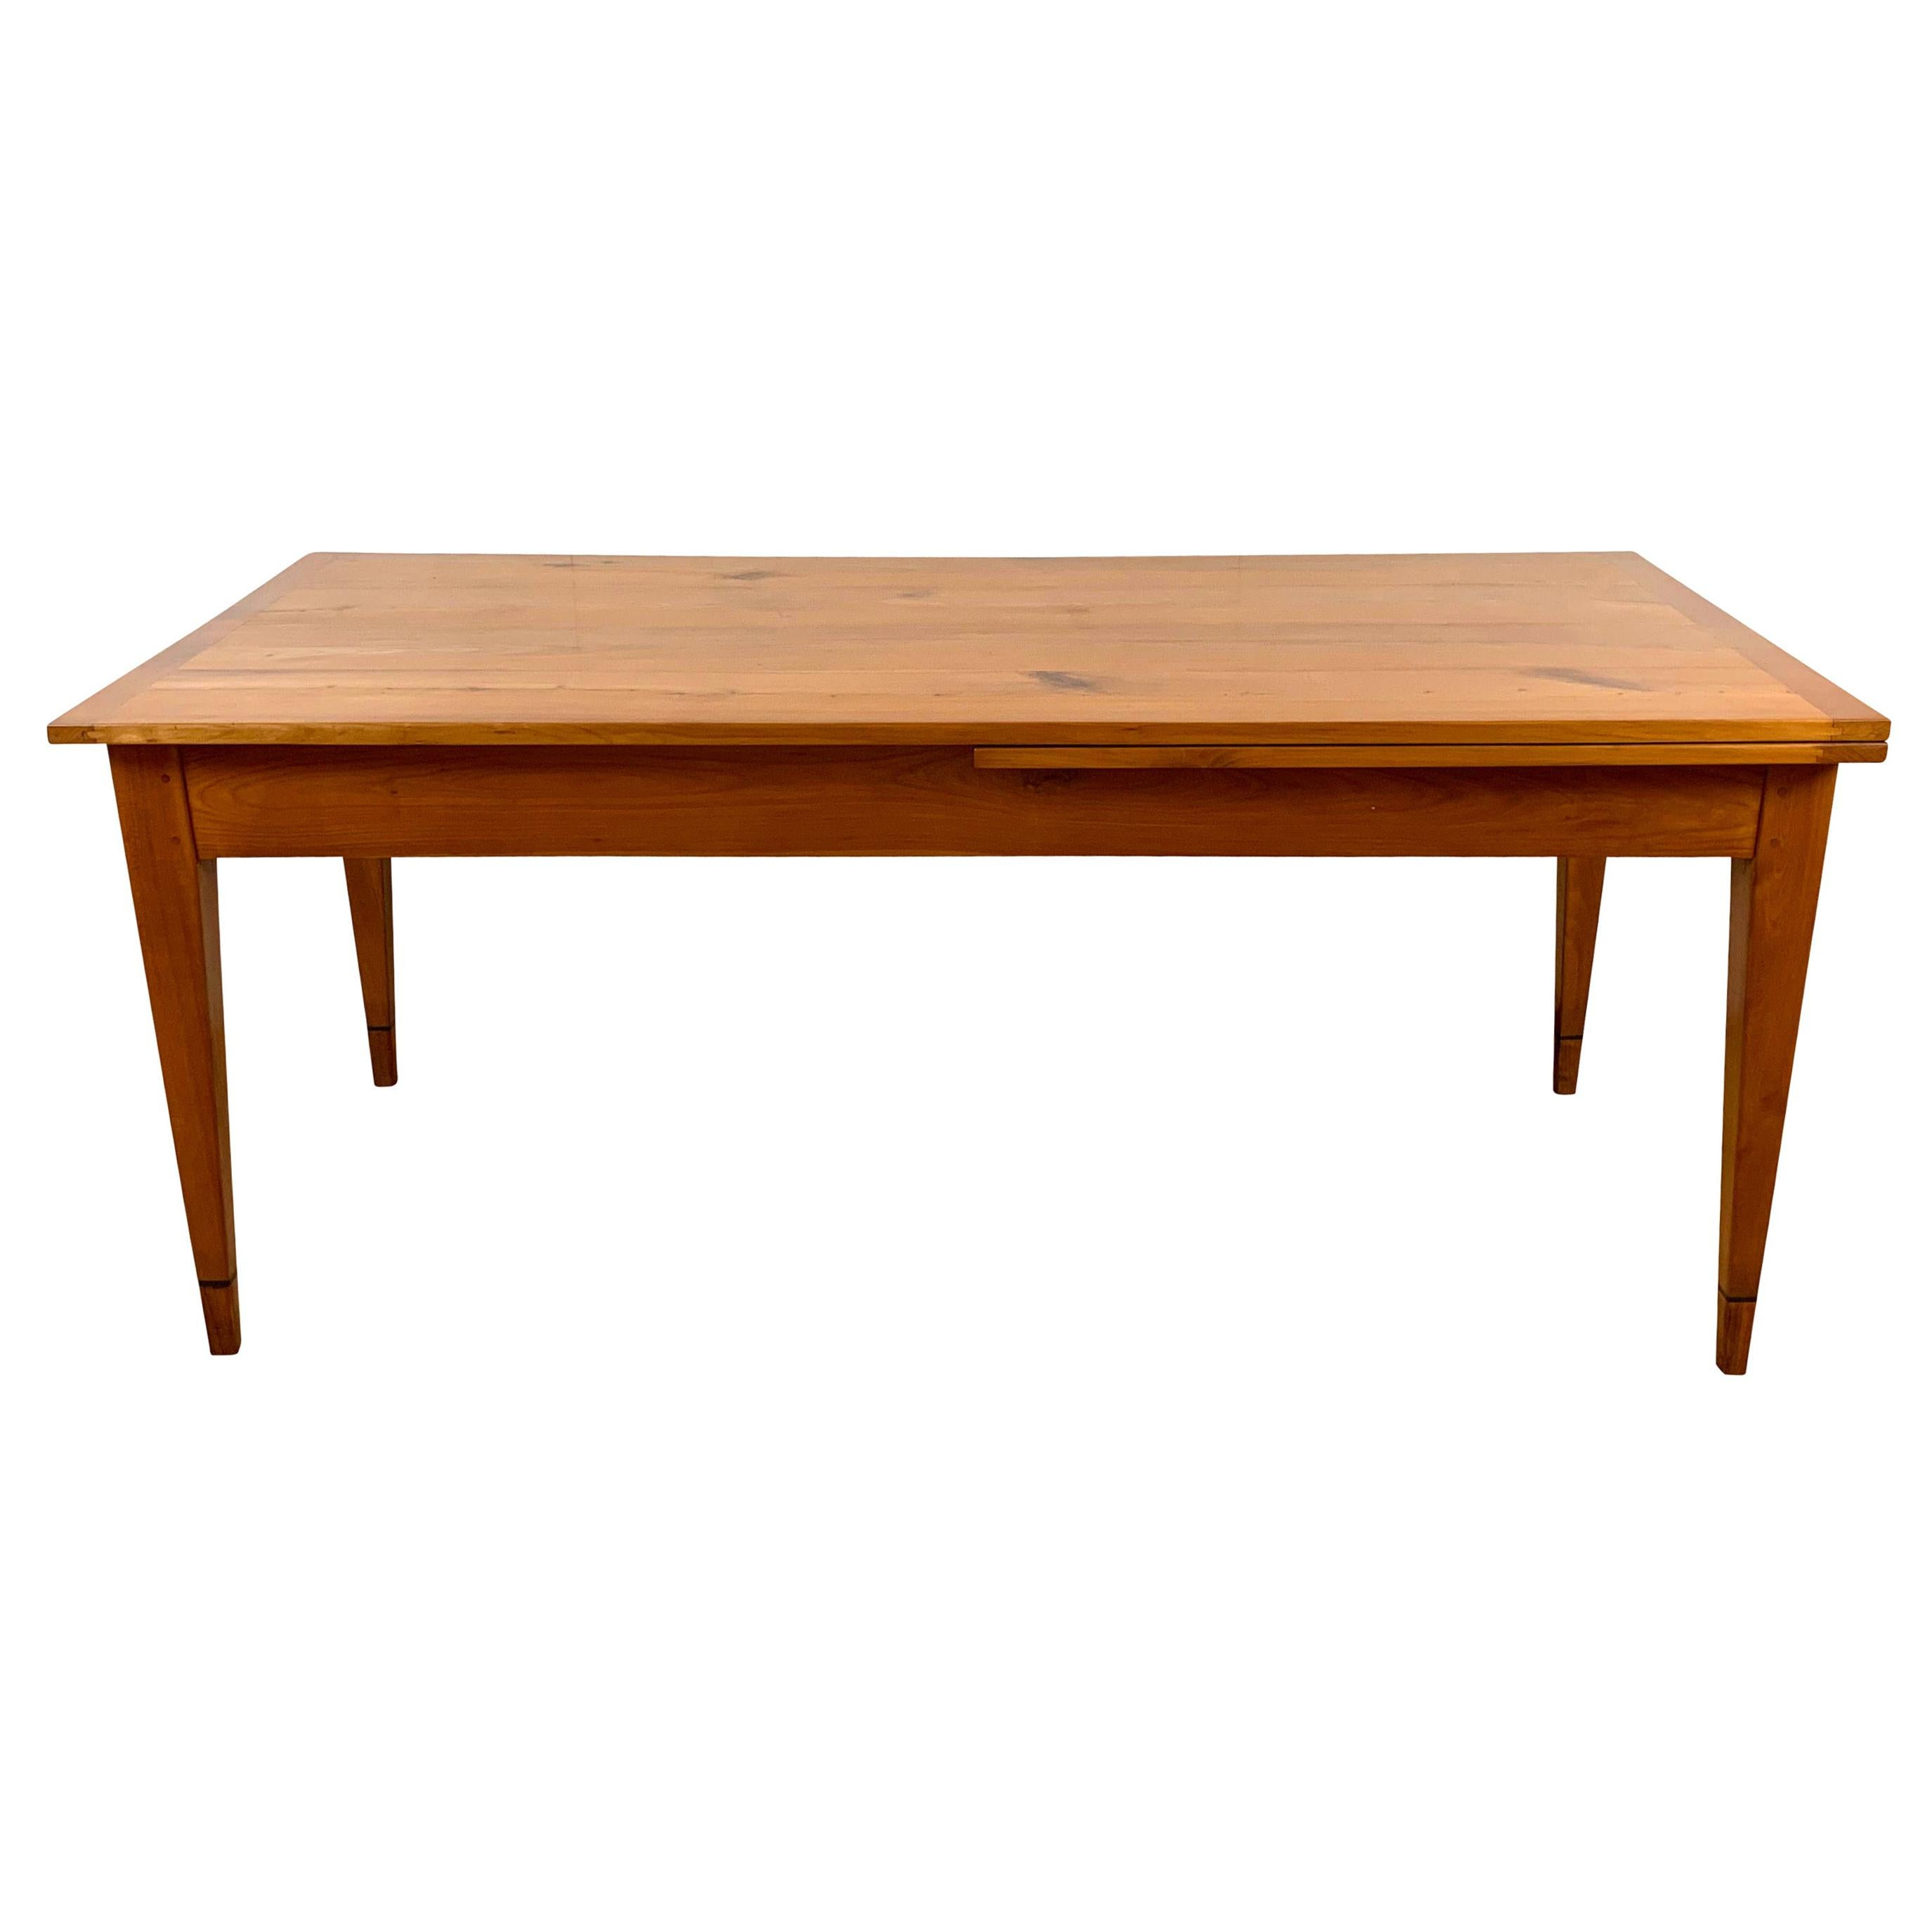 Neoclassical Expandable Dining Table, Solid Cherry, Chestnut, France circa 1820